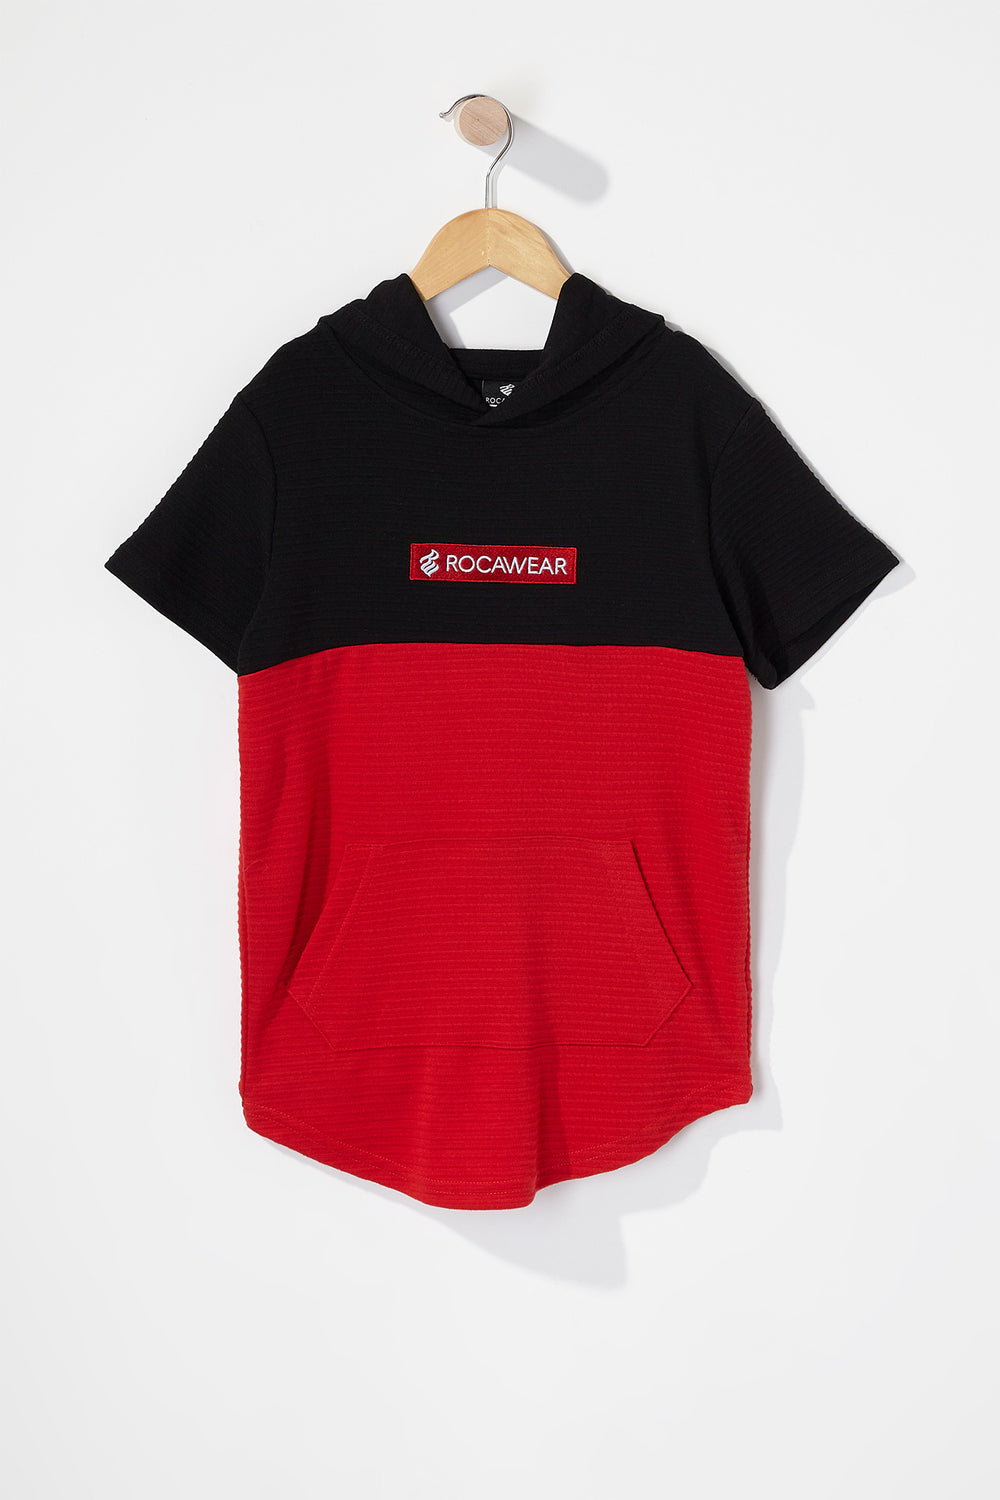 Boys Rocawear Ribbed Colour Block Hooded T-Shirt Black